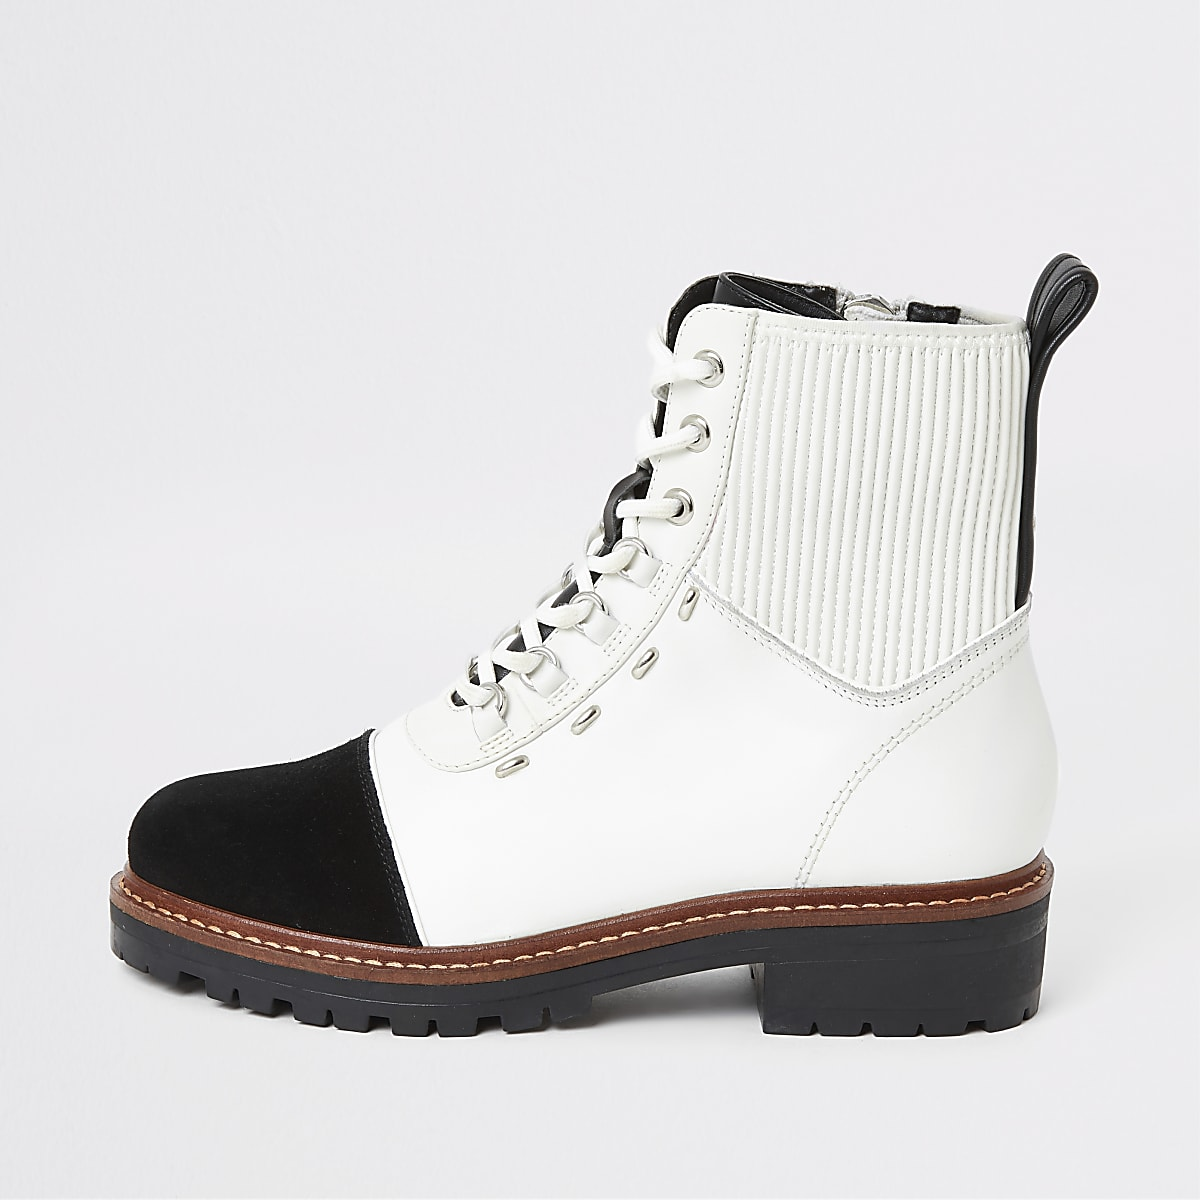 White contrast leather lace-up hiking boots